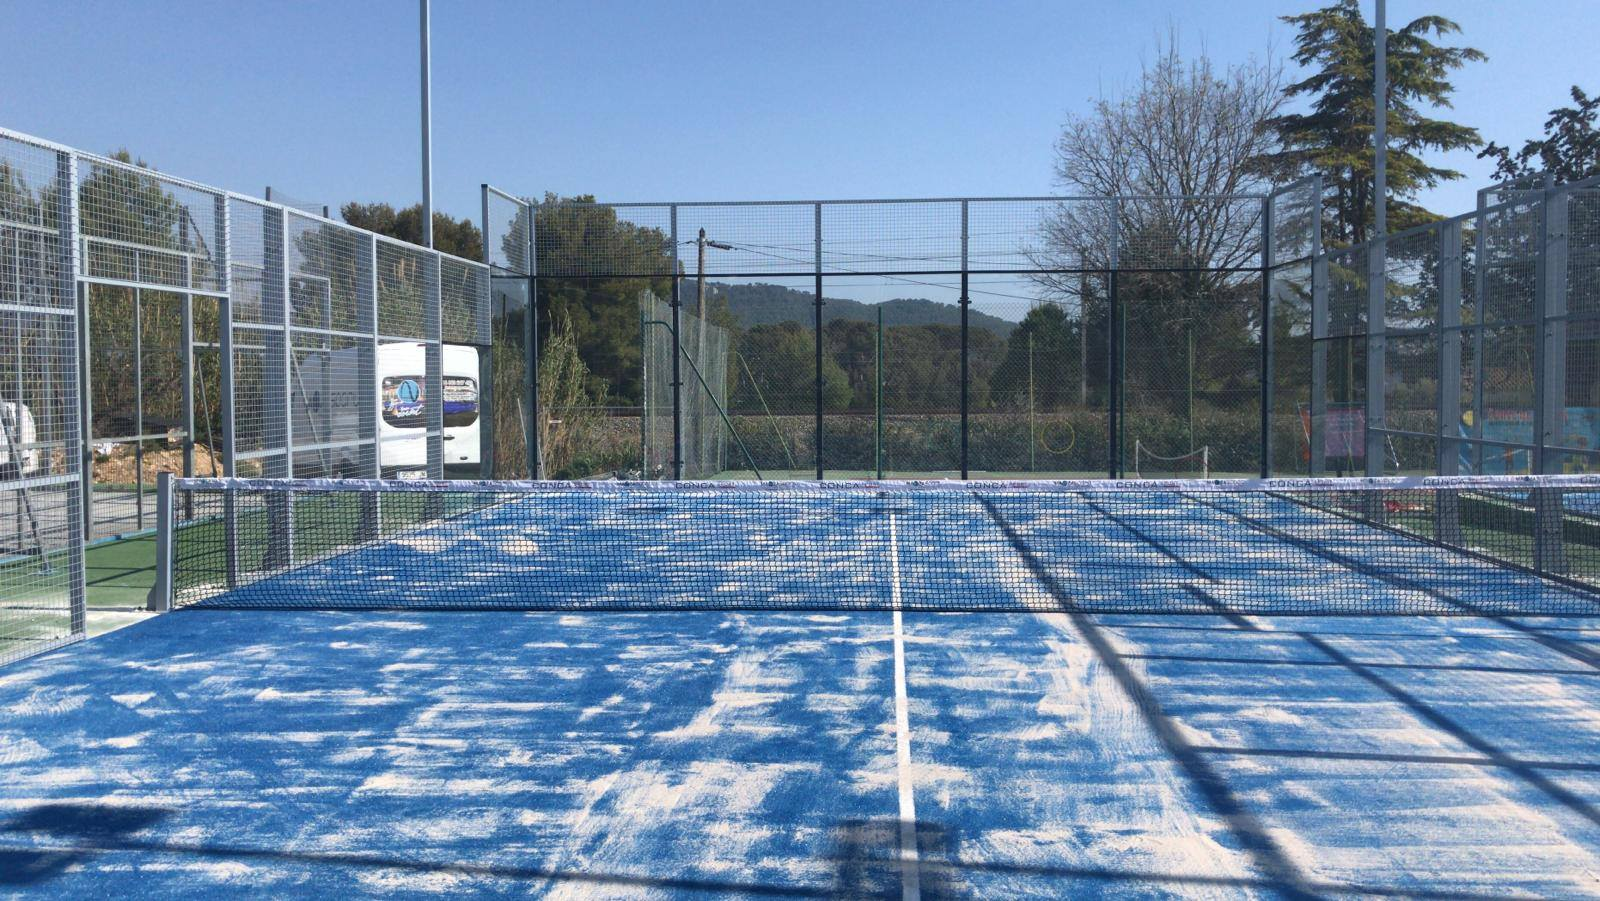 Saint Cyrien Tennis Club: 4 padel courts